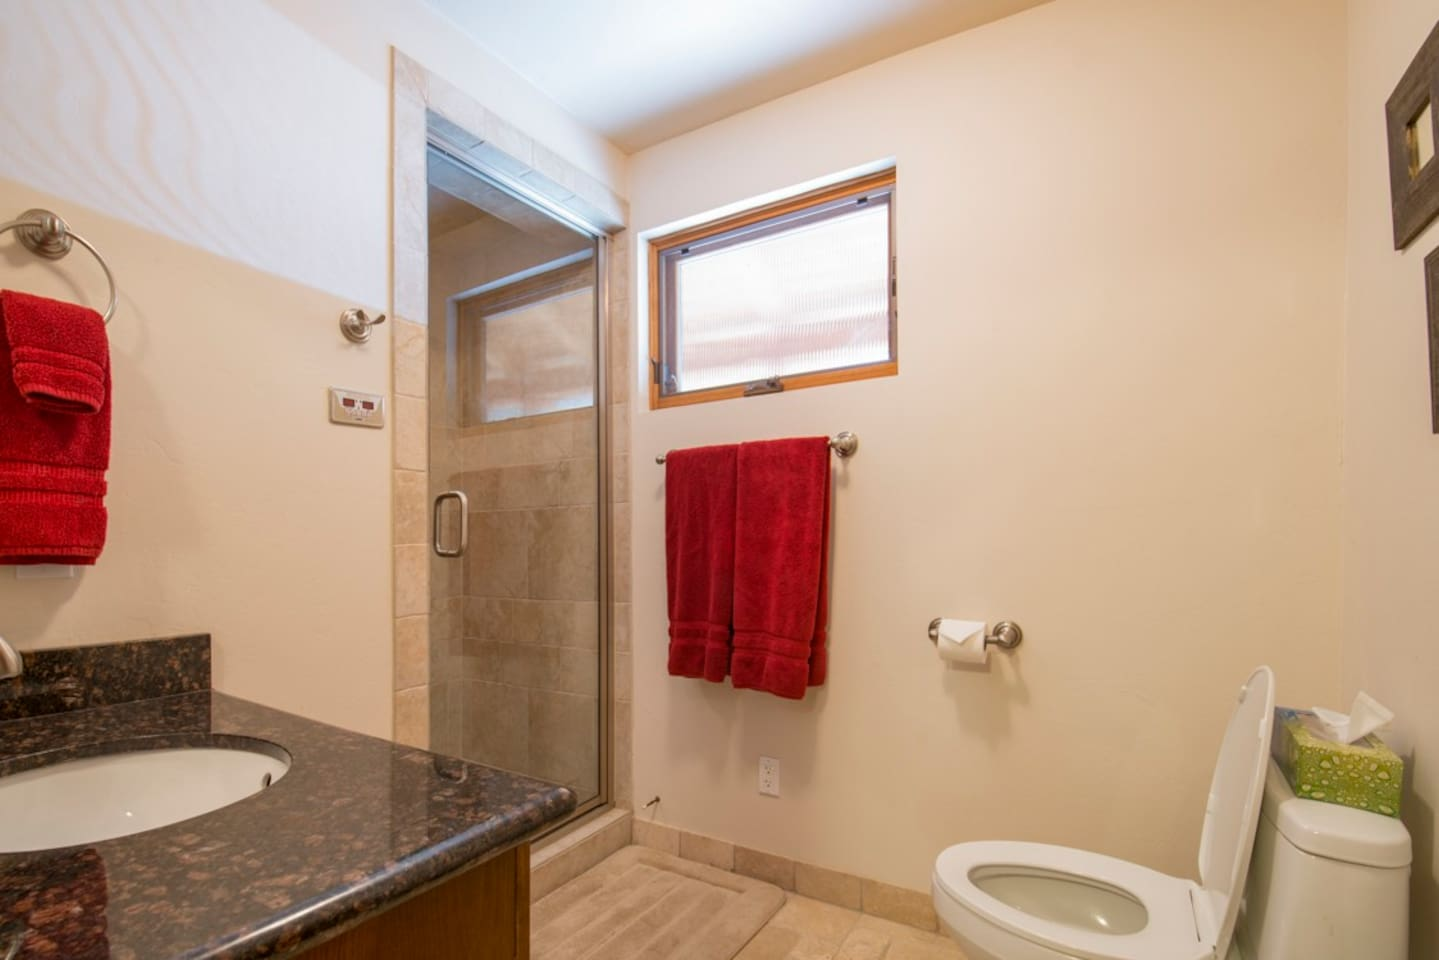 Downstairs bathroom with large stone shower.